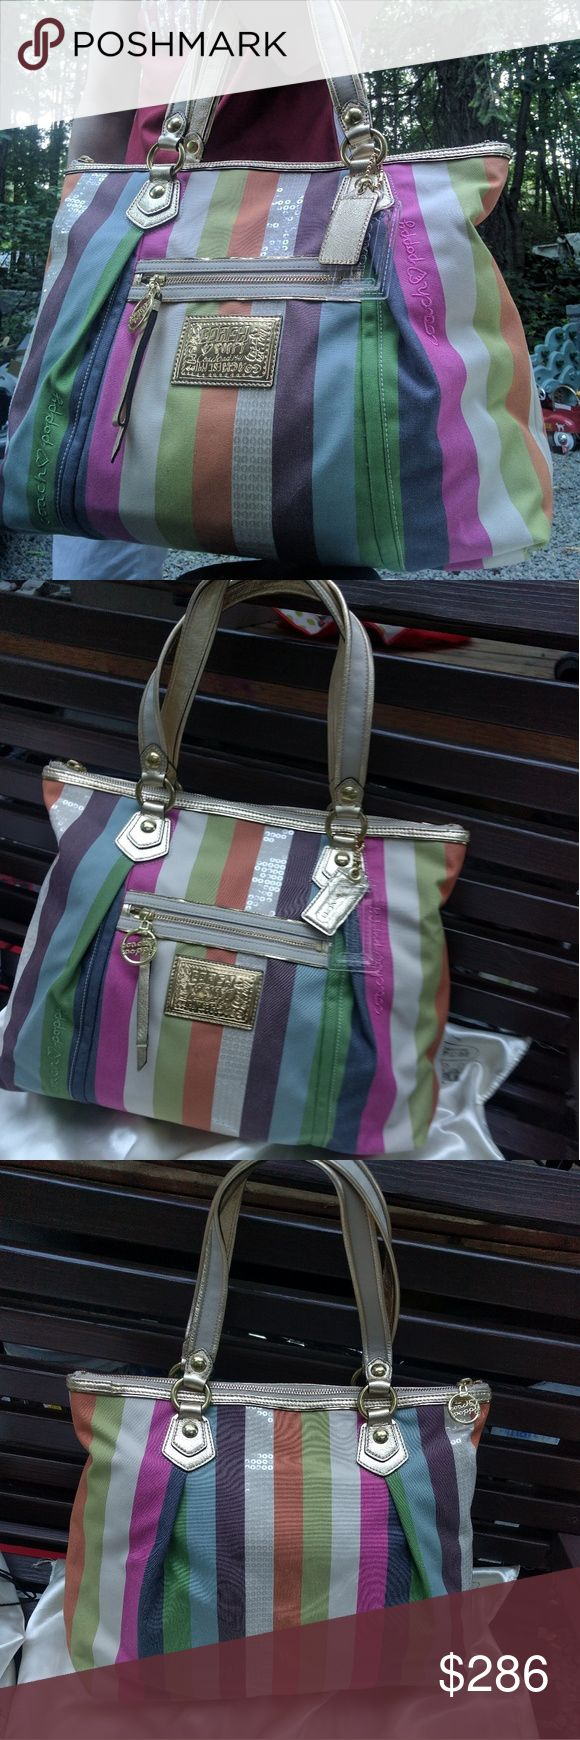 RARE COACH POPPY Legacy SEQUIN Stripe Glam Tote GORGEOUS Coach Poppy in flawless condition! Carried once, then stored in dustbag. Very large bag! Perfect for keeping essentials safe and easily accessible on the go; while, of course, being glamorous! Any questions? Please comment. Offers? Please use designated button. 😘 Coach Bags Totes